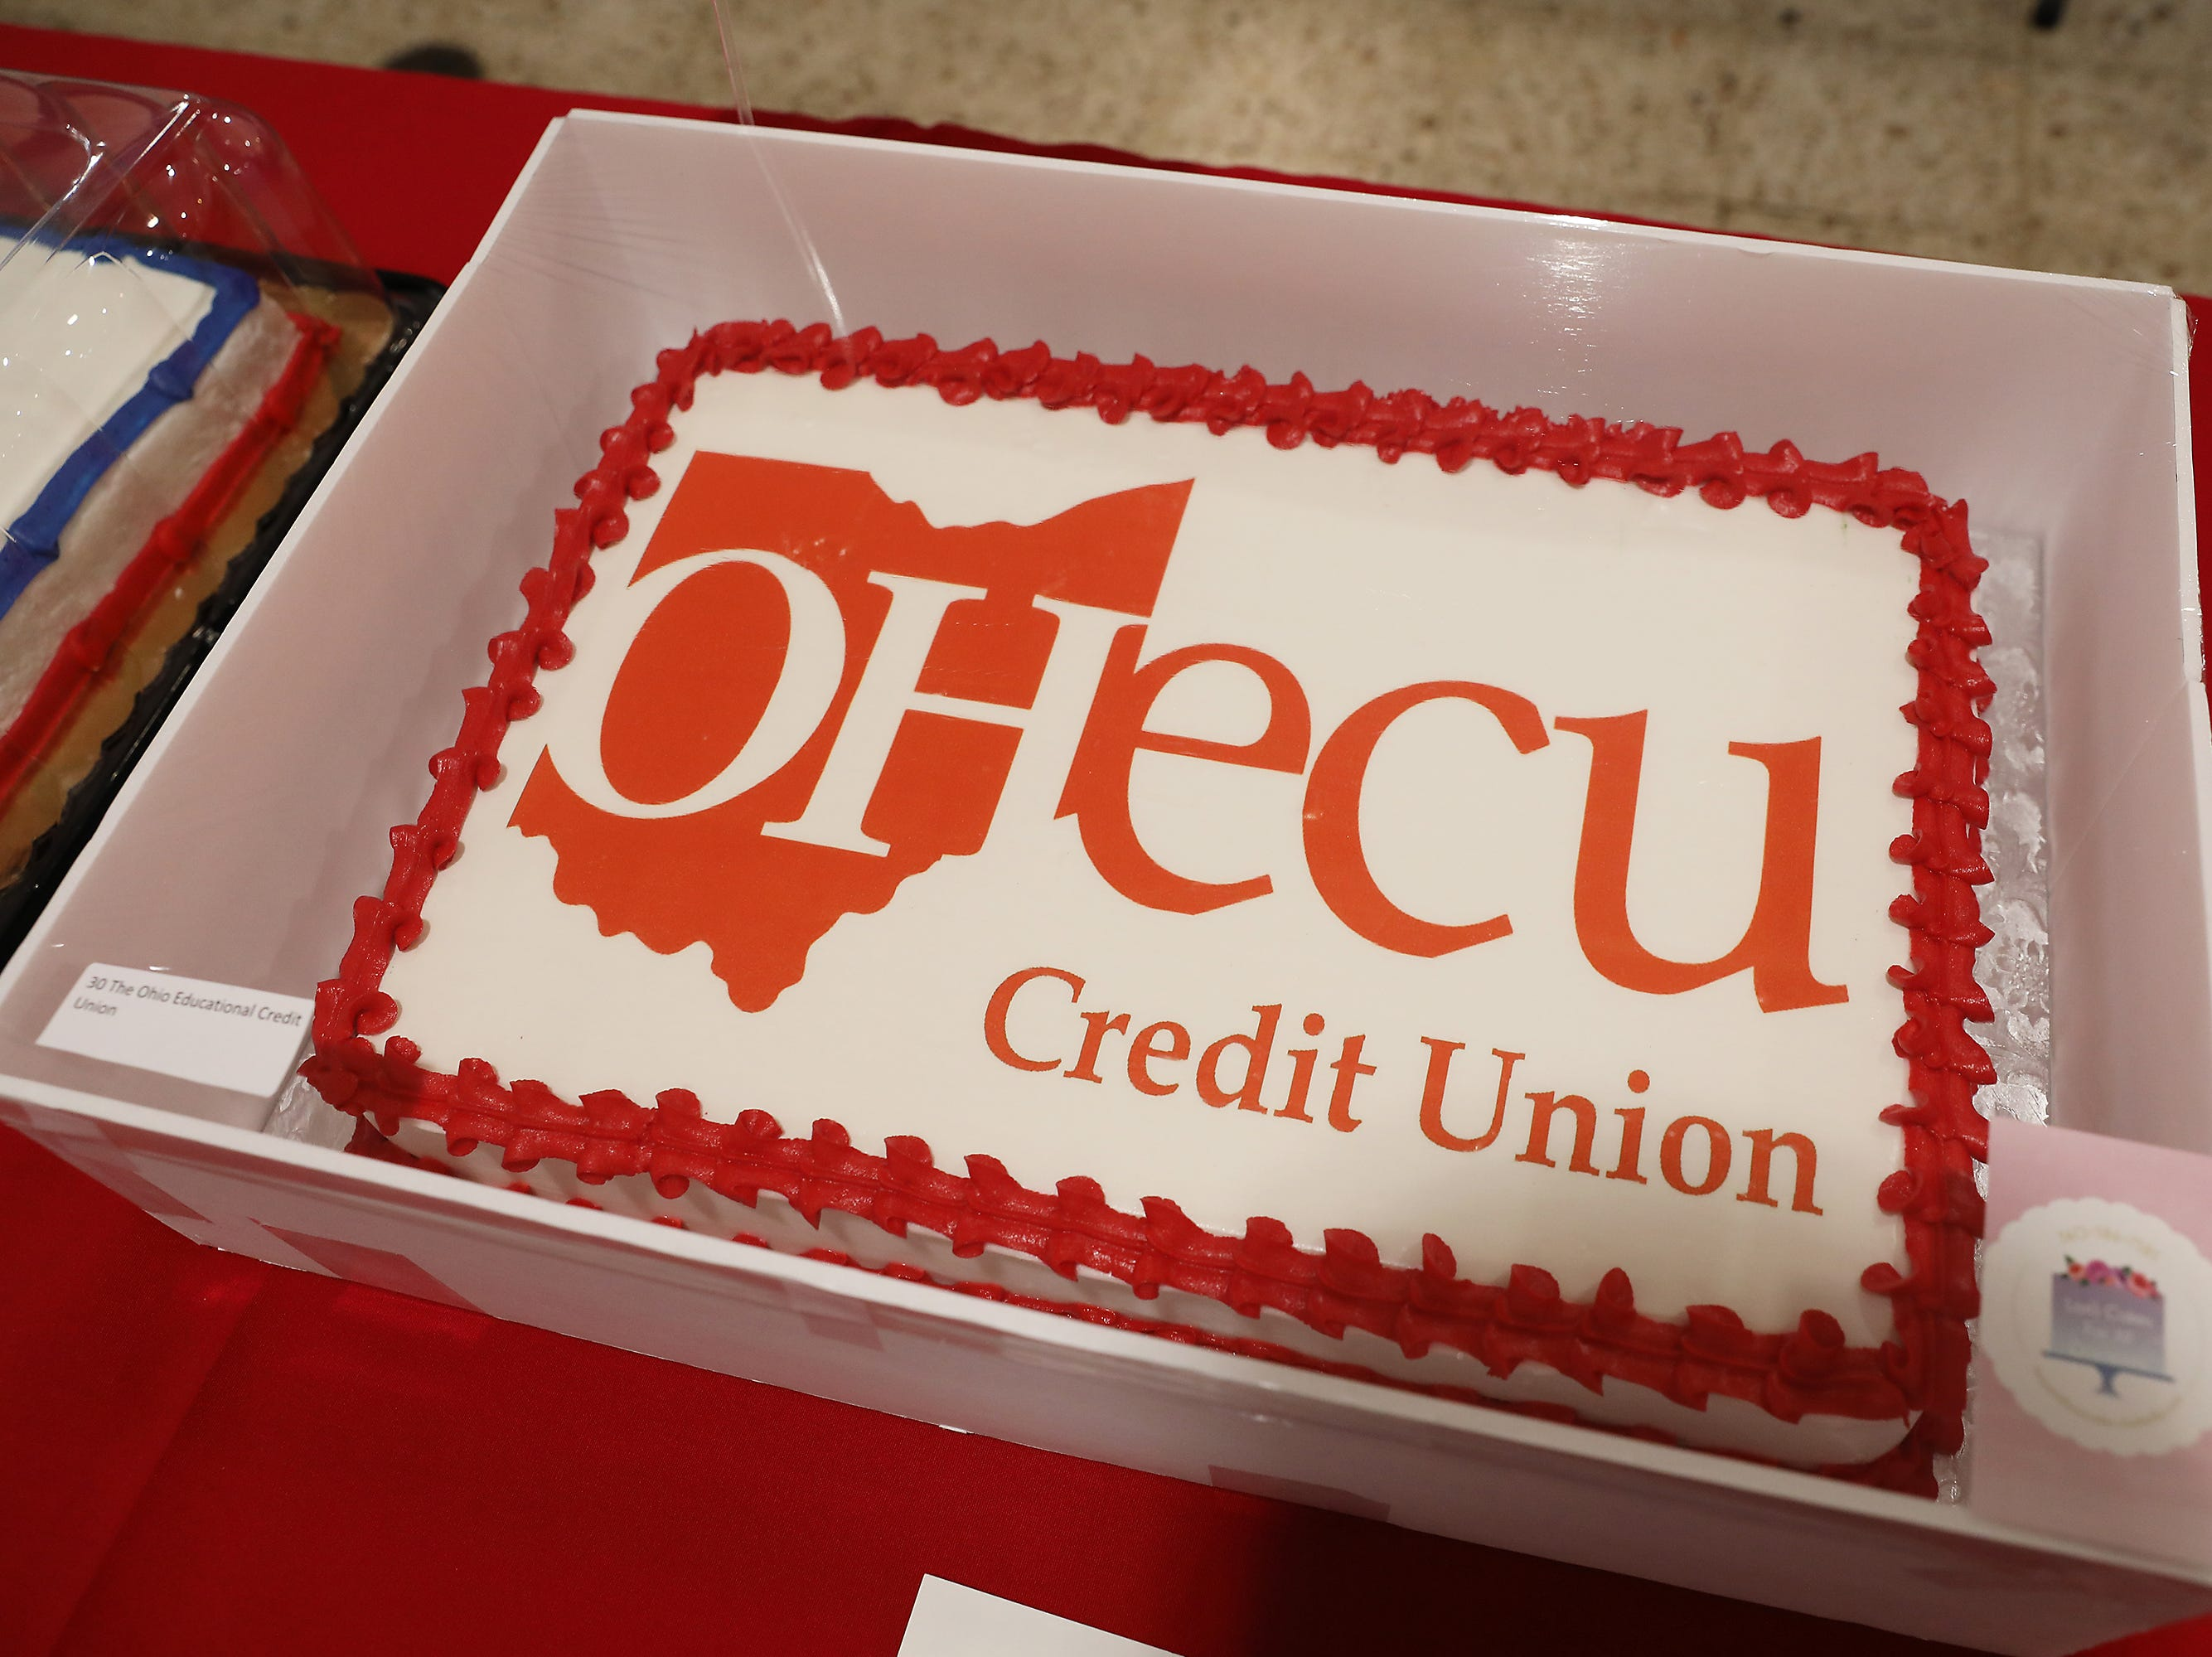 9:15 A.M. Thursday cake 30 The Ohio Educational Credit Union - $25 gift cards to Starbucks, Donald's Donuts, Tom's Ice Cream